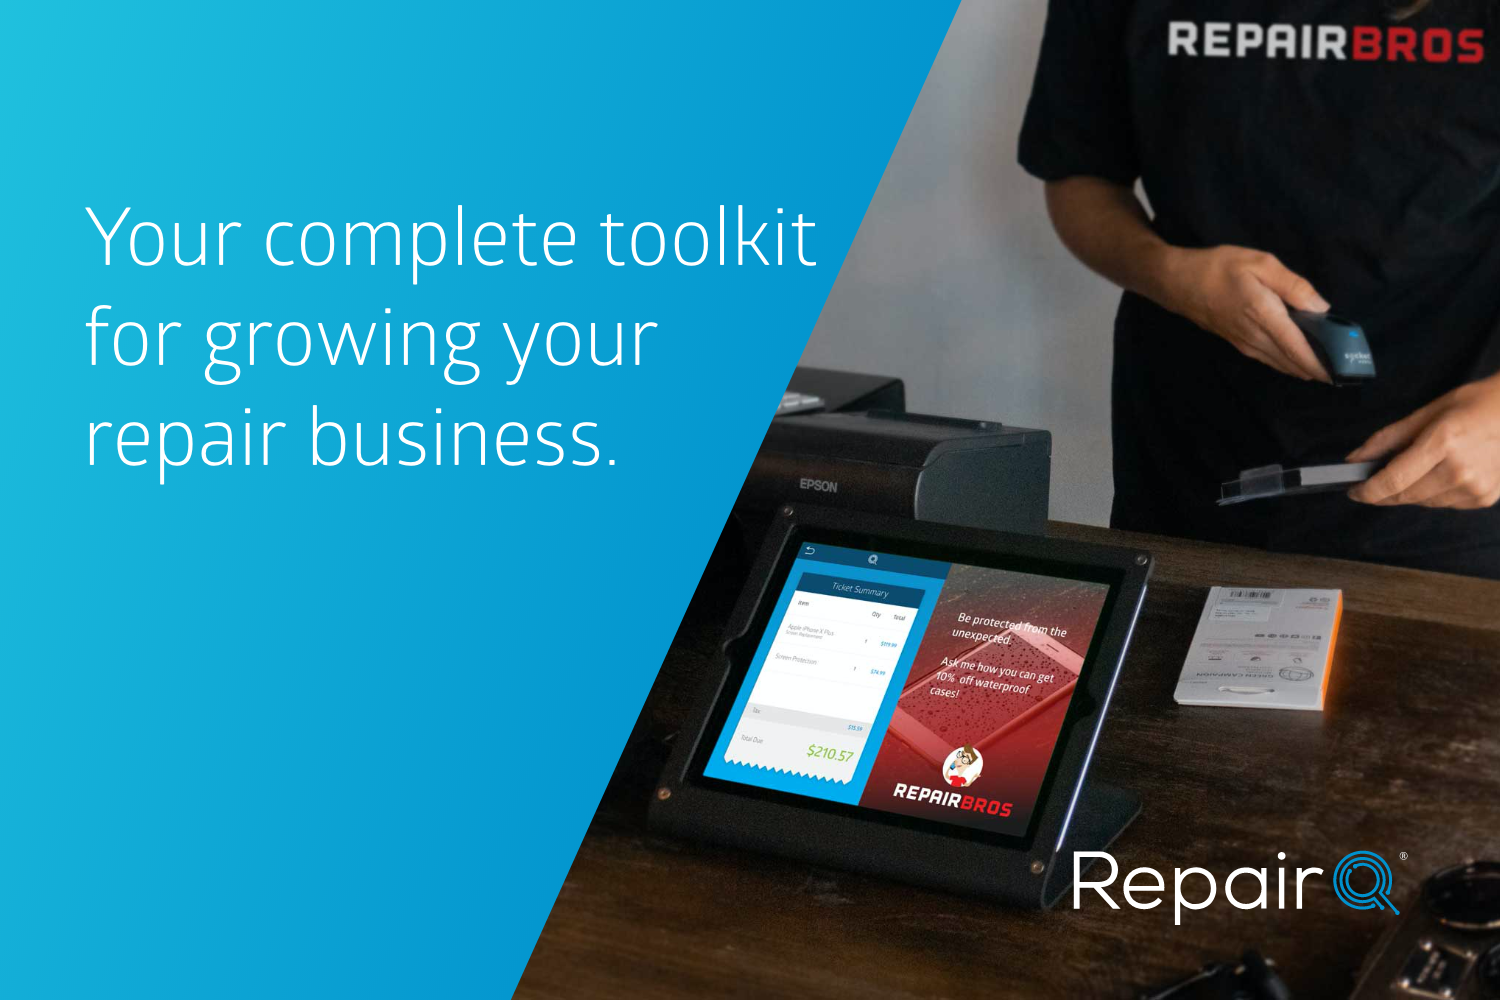 Your complete toolkit for growing your repair business.